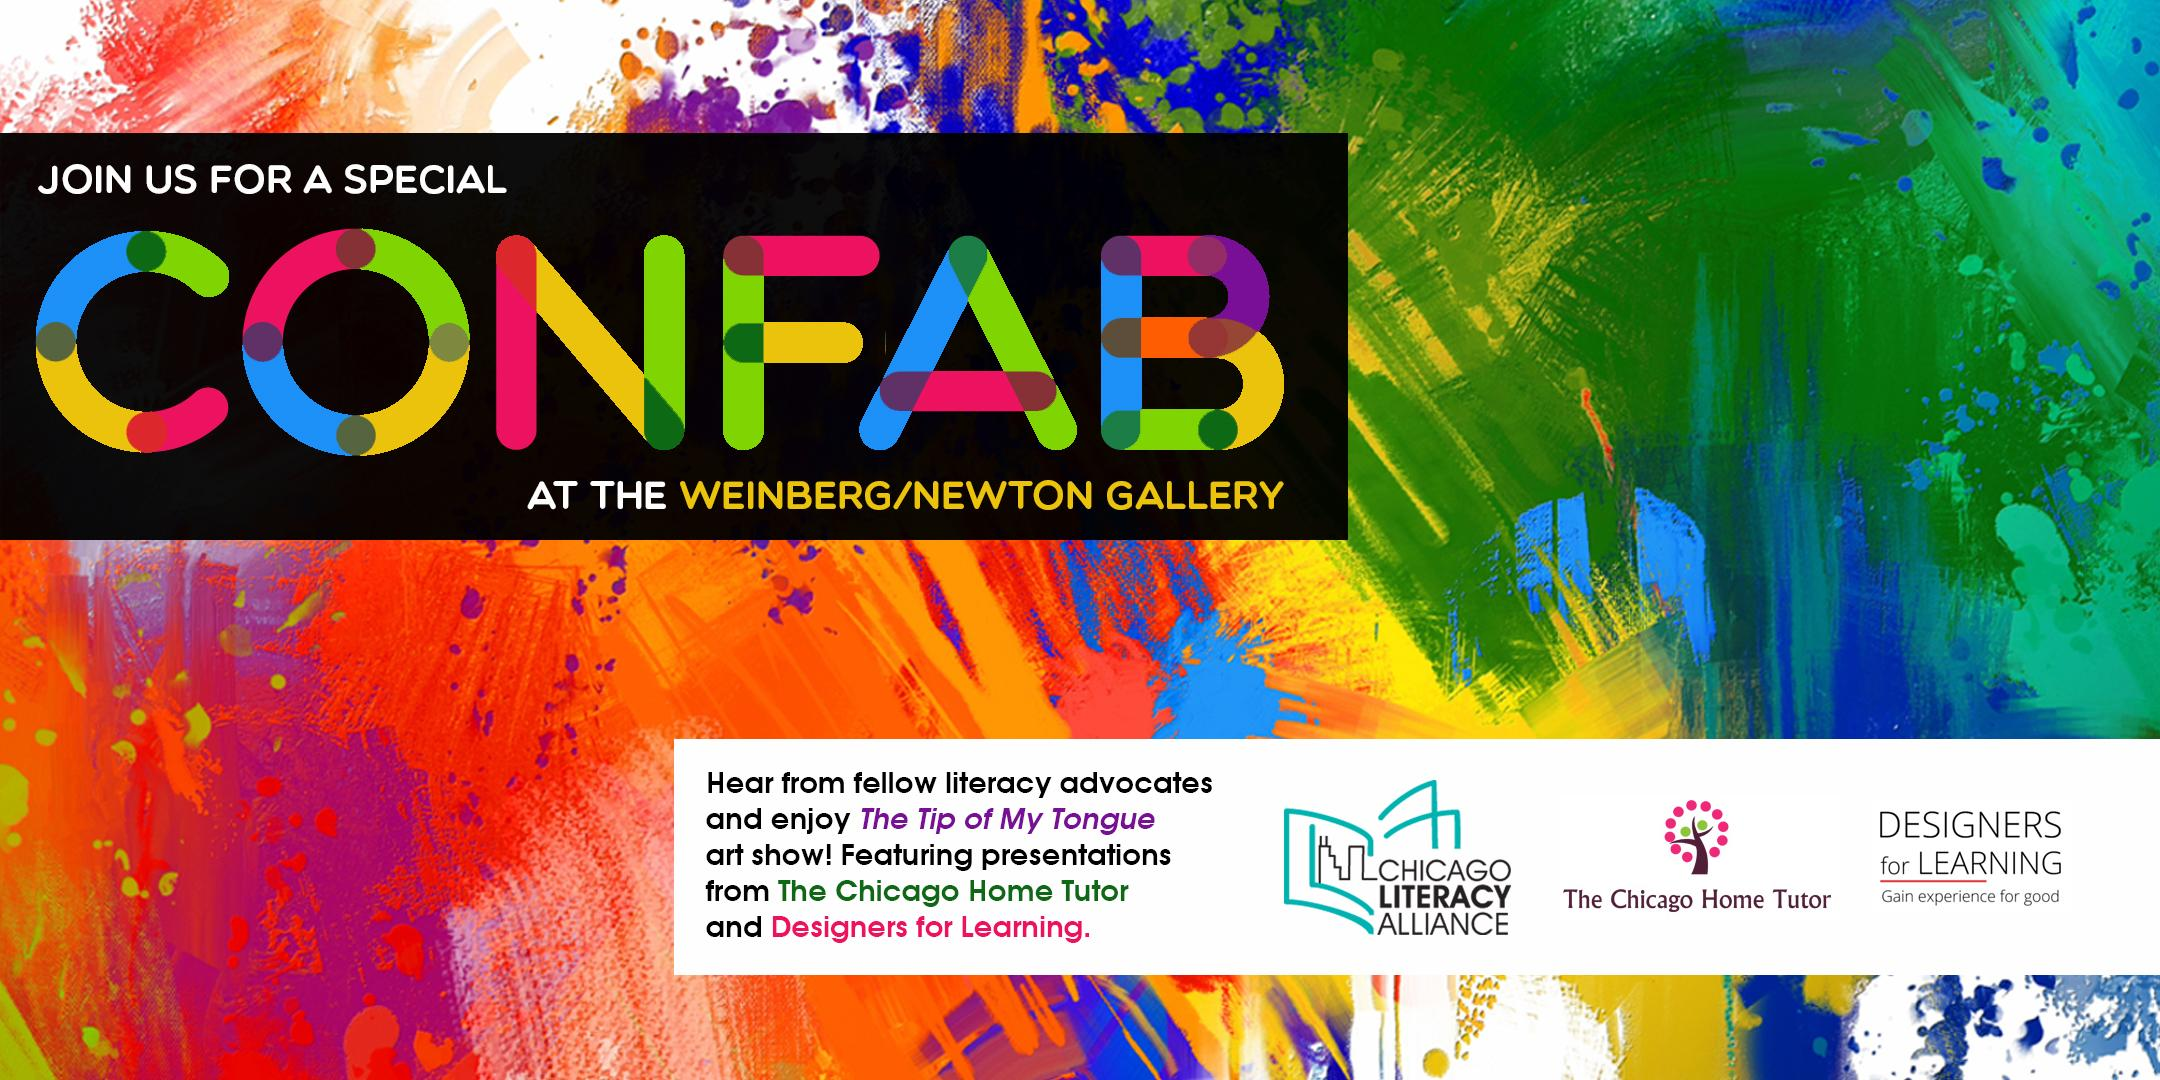 The CLA Confab at the Weinberg/Newton Gallery